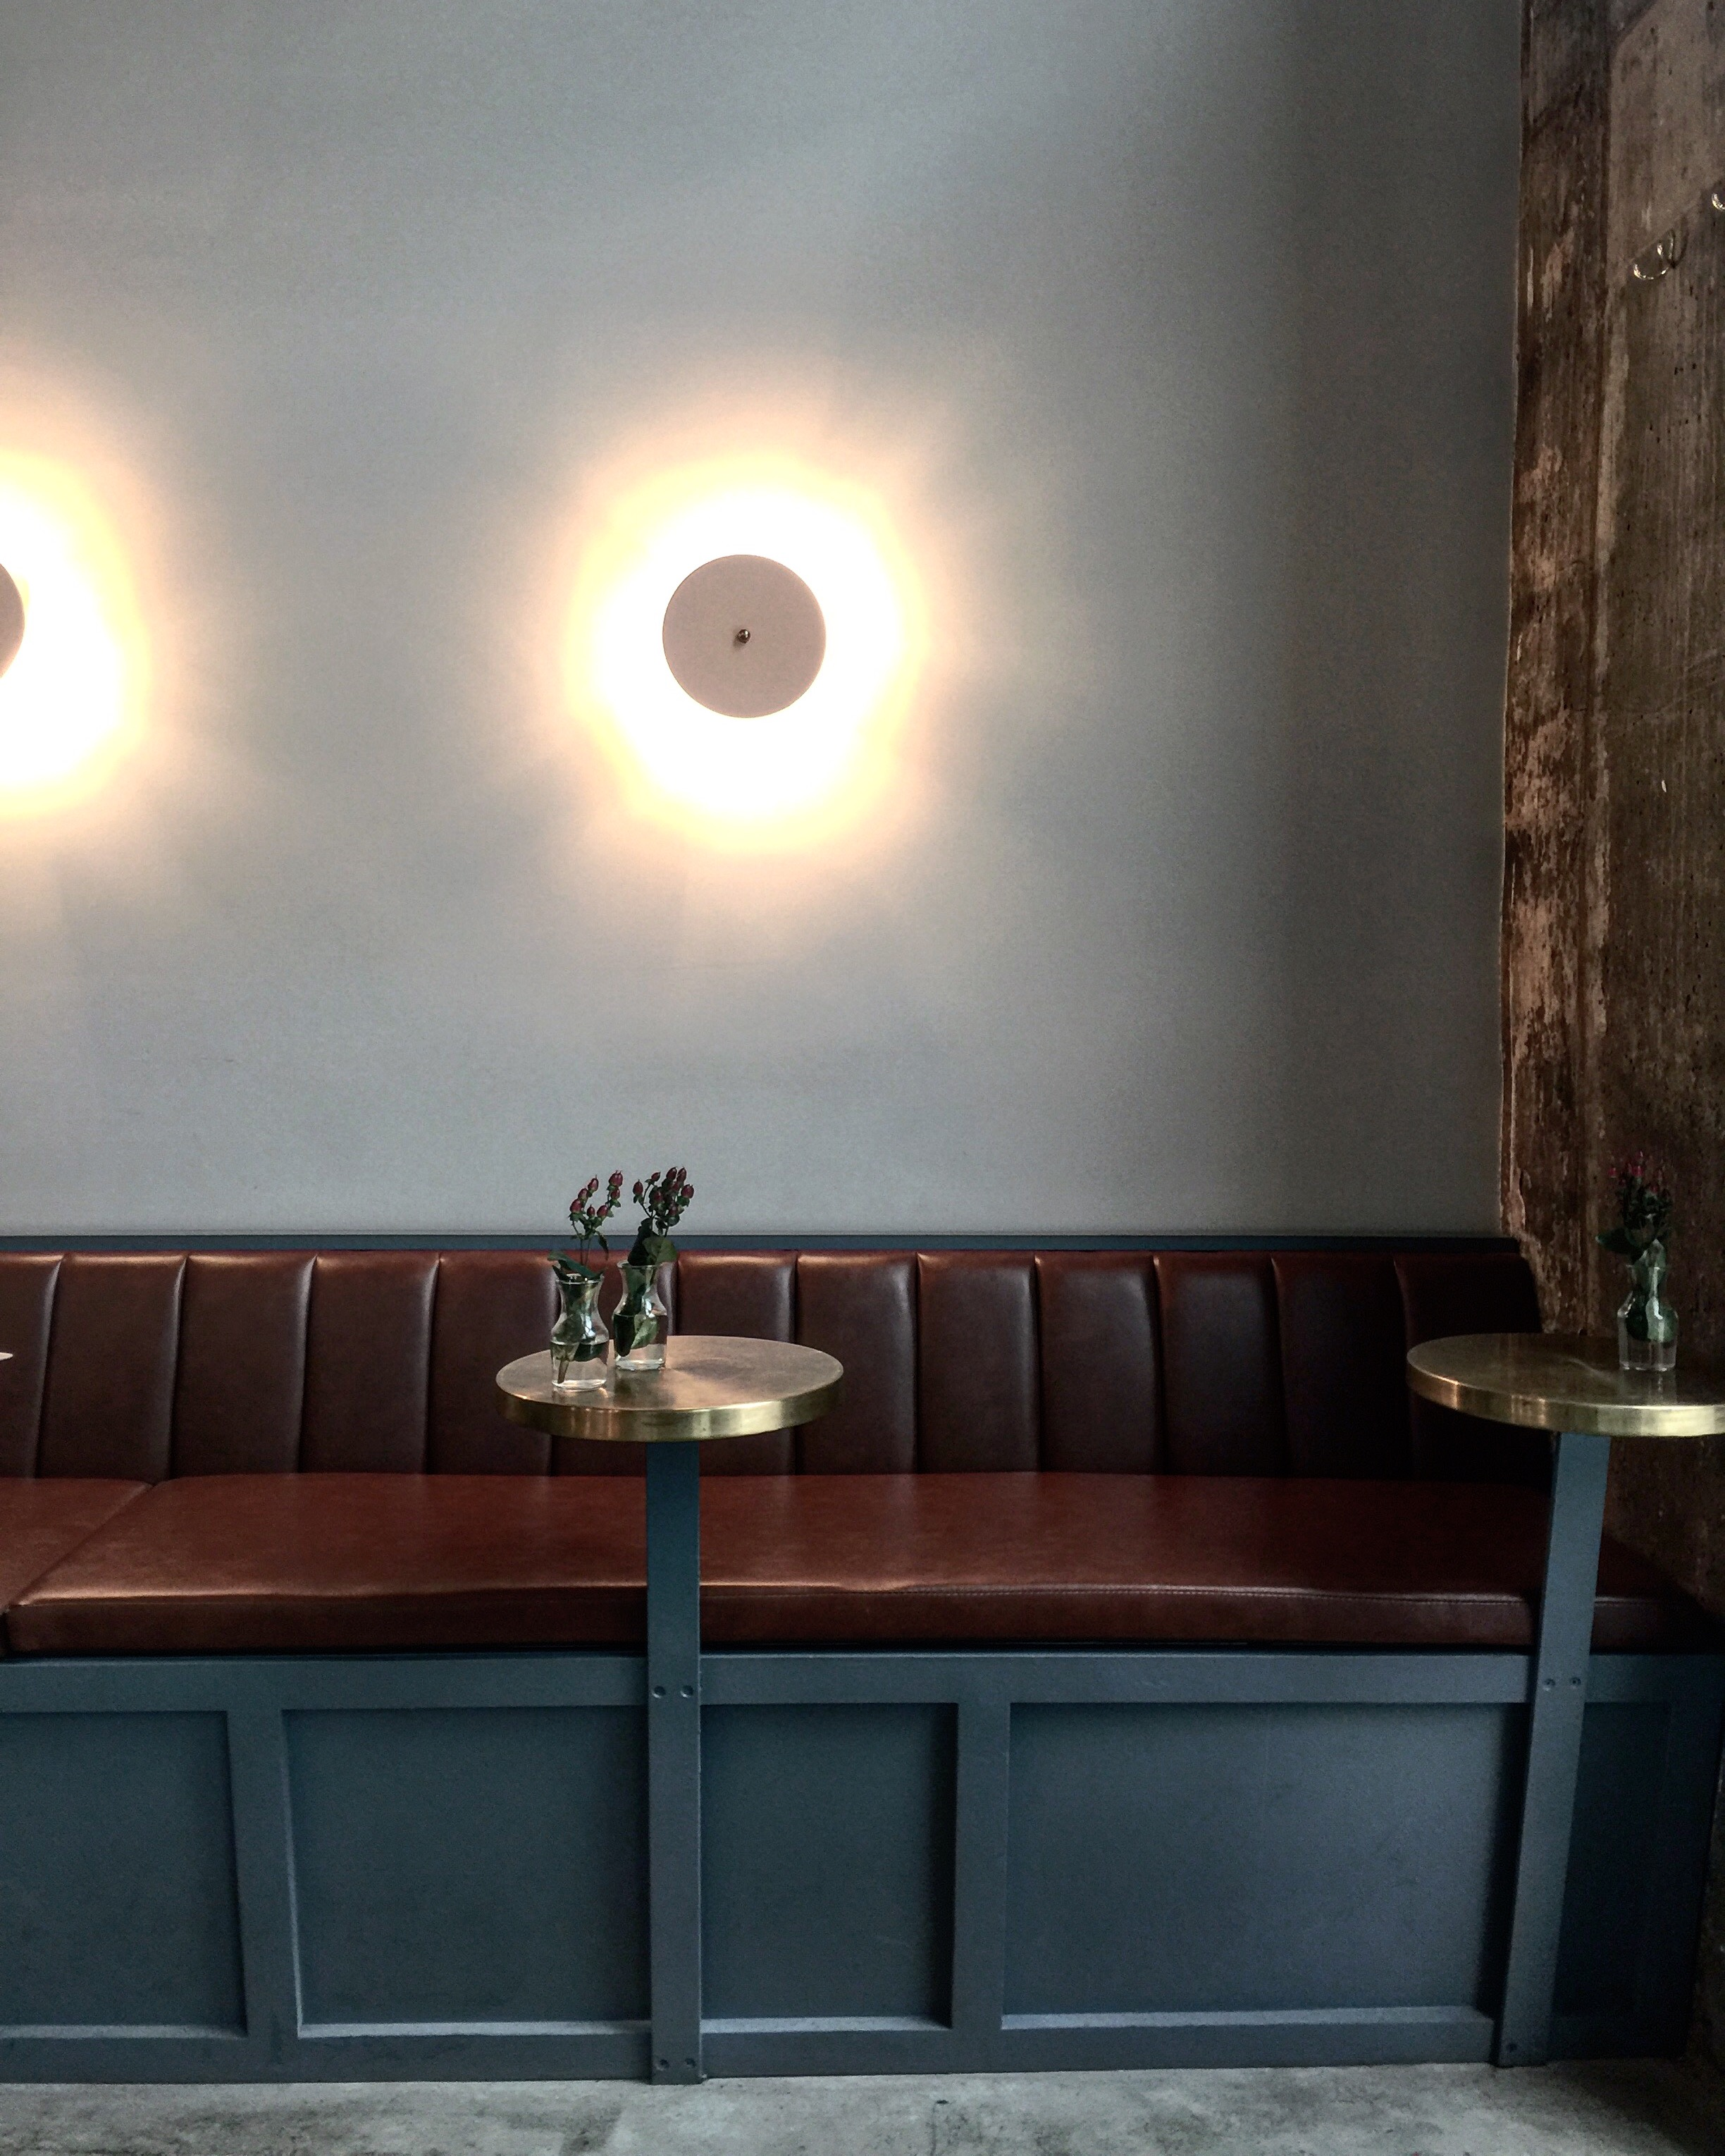 ROSE & IVY Journal A Taste of New York Two Pretty New Coffee Shops on Our Radar Butler, Brooklyn